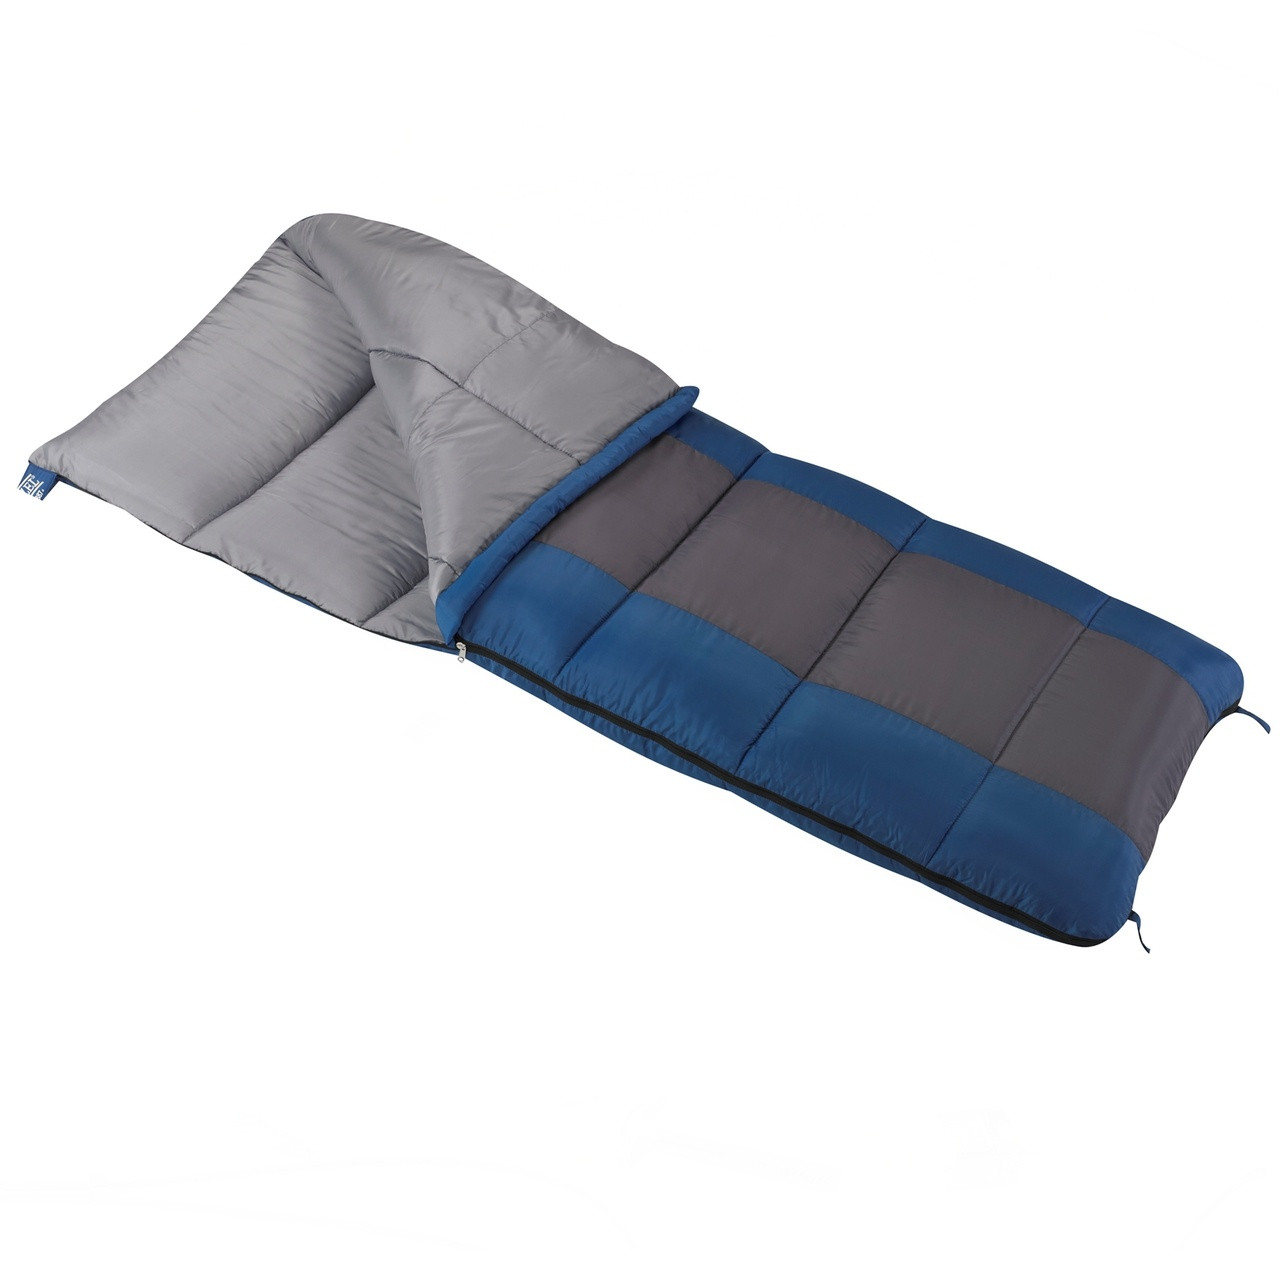 Wenzel Sunward 30 degree sleeping bag blue and gray with the corner partially unzipped and folded over showing the gray interior of the sleeping bag